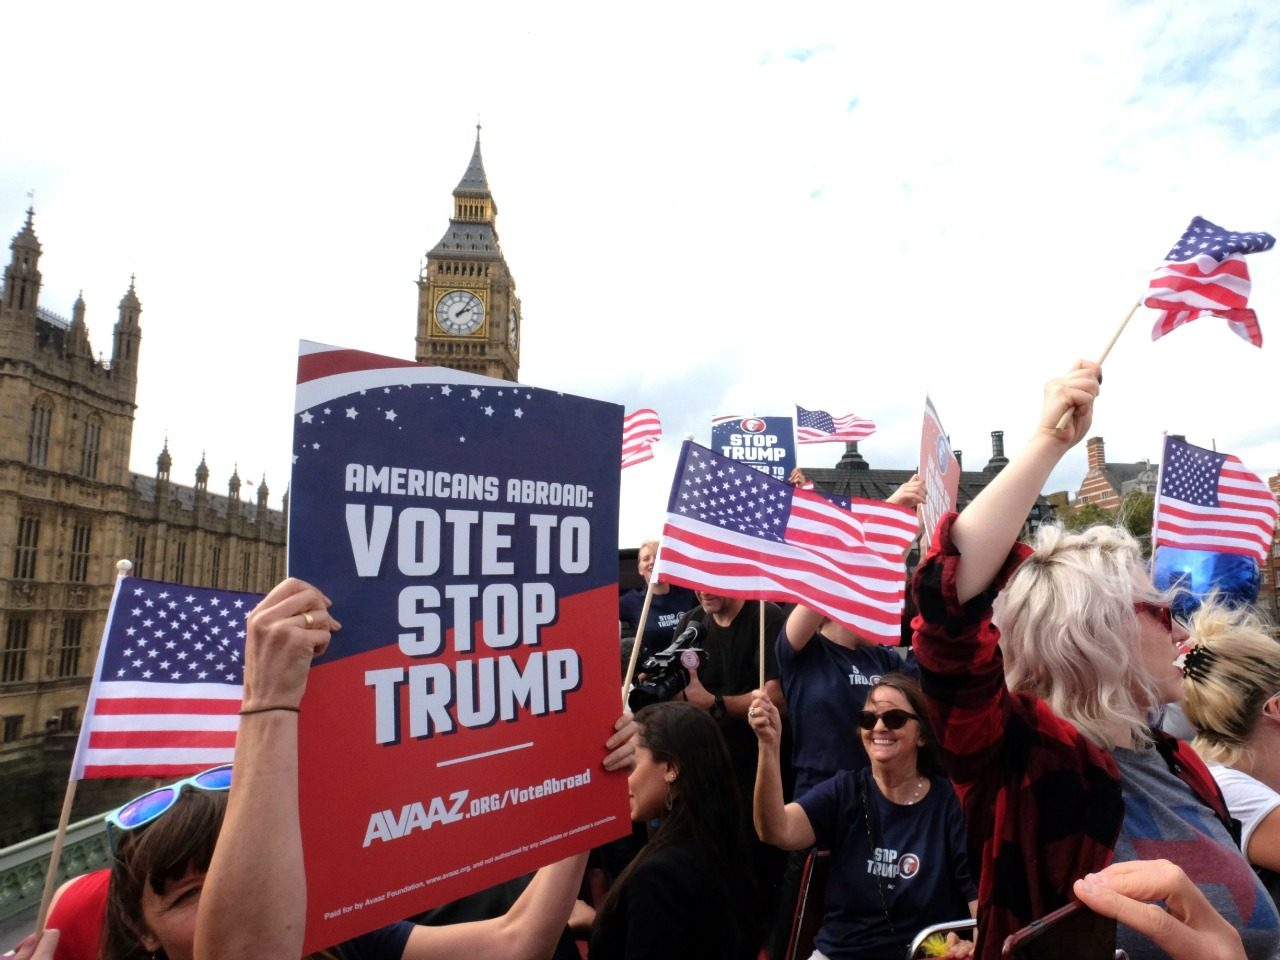 Soros-Linked 'October Surprise That Will End Trump': The Campaign To Register 8 Million 'Global Citizens' To Vote